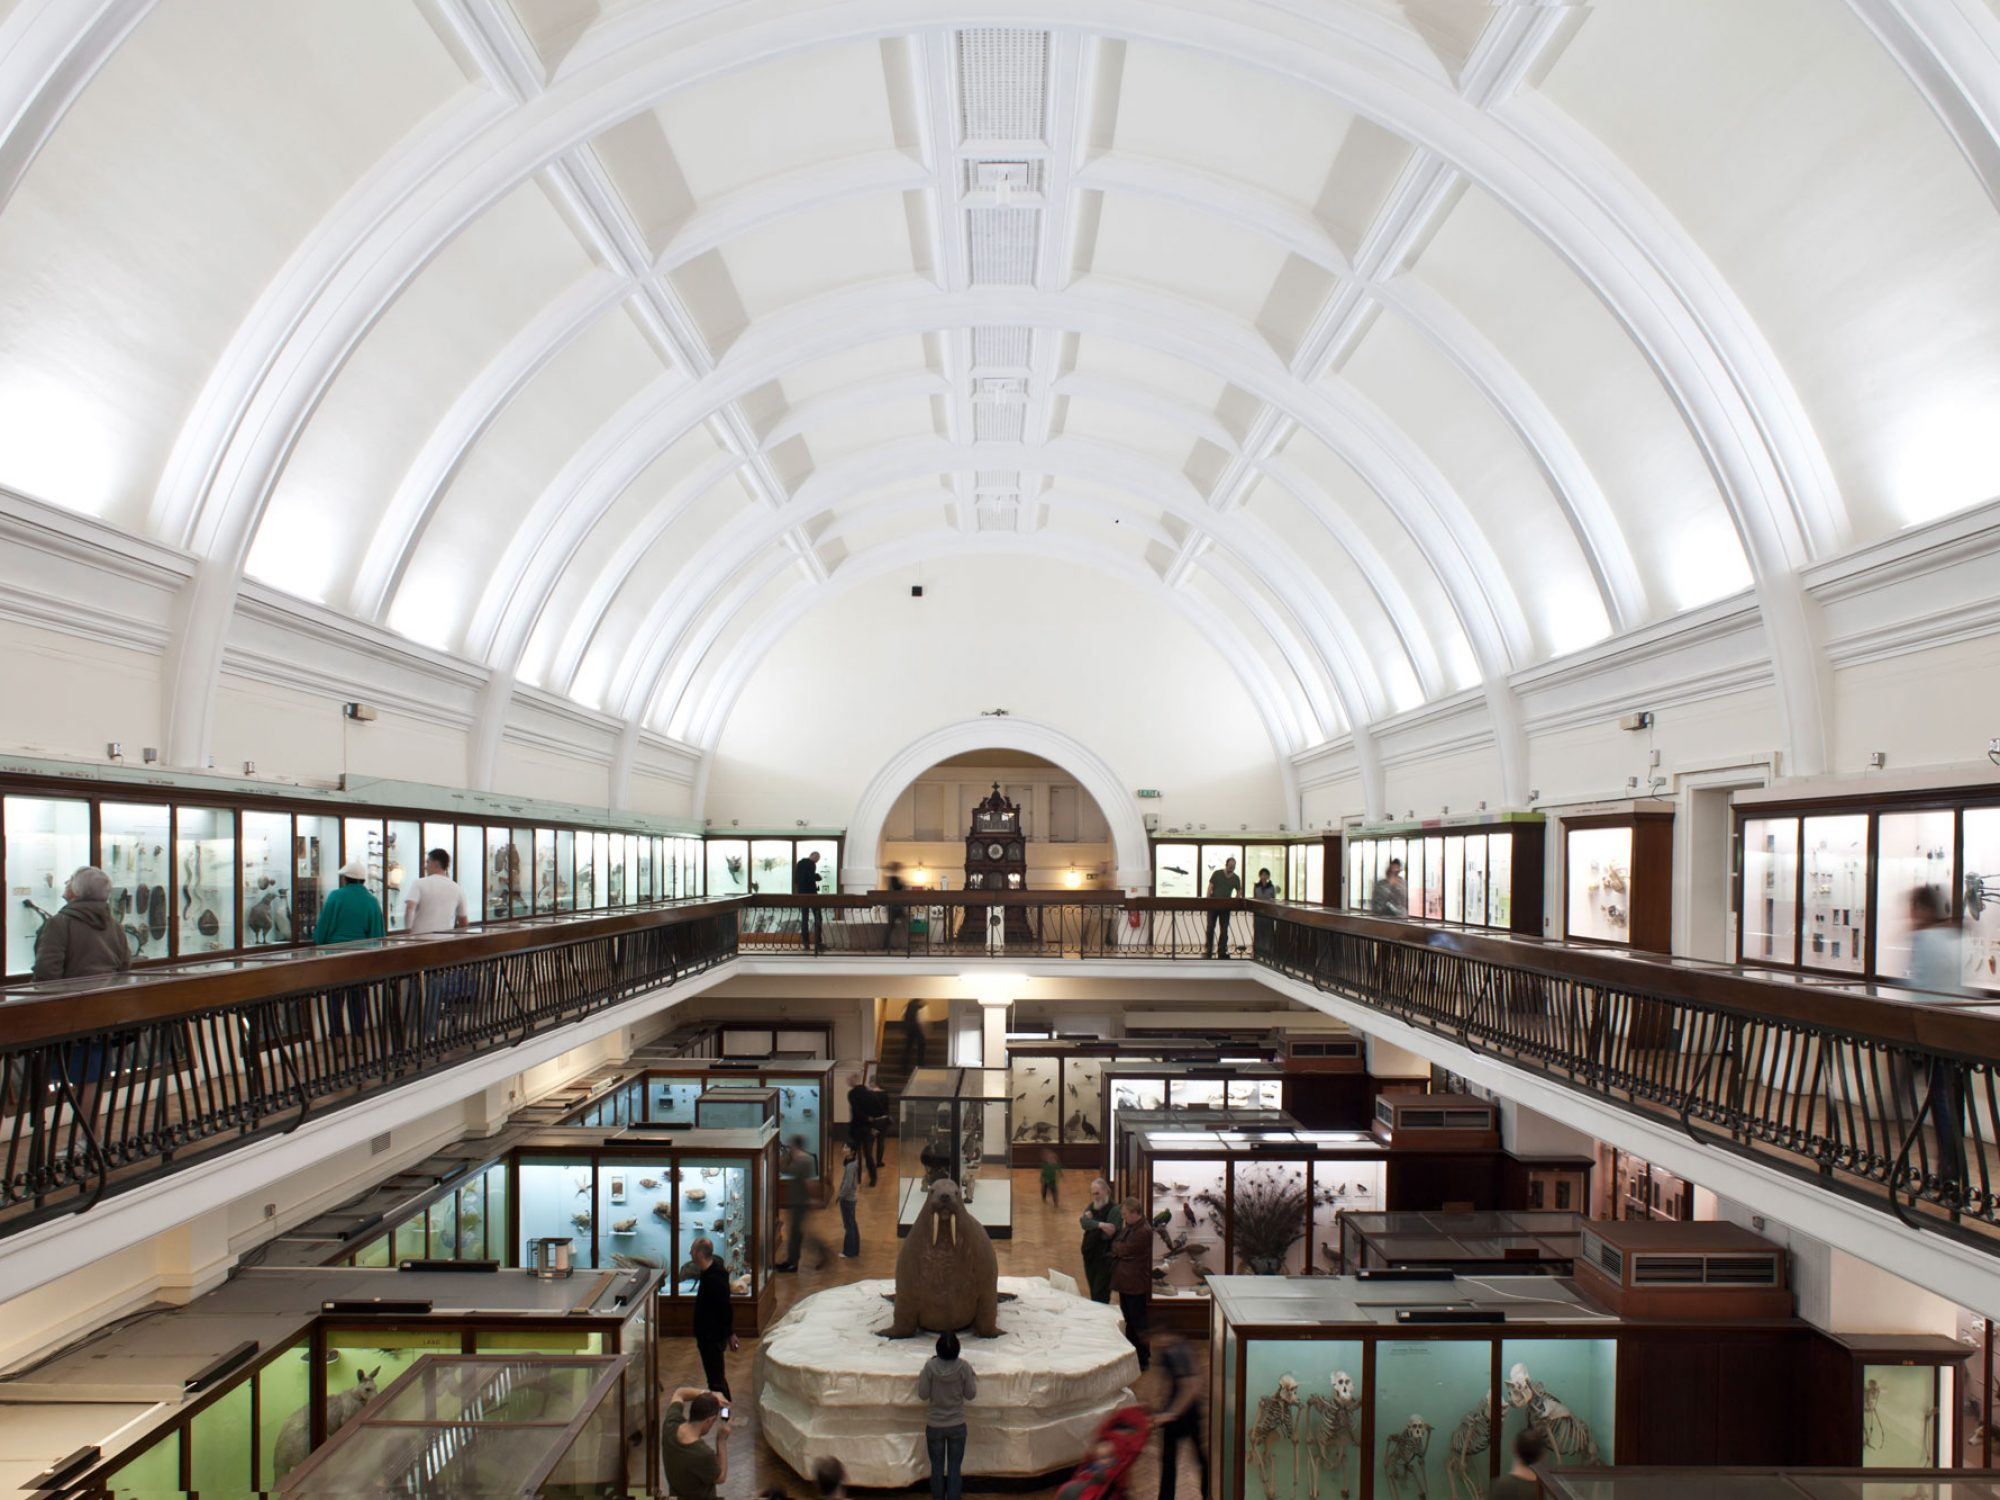 A gallery seen from a balcony above it. The balcony and the gallery below are full of colourful cases of taxidermy animals. The roof is a white arch and there are no windows. There is a metal rail around the balcony.